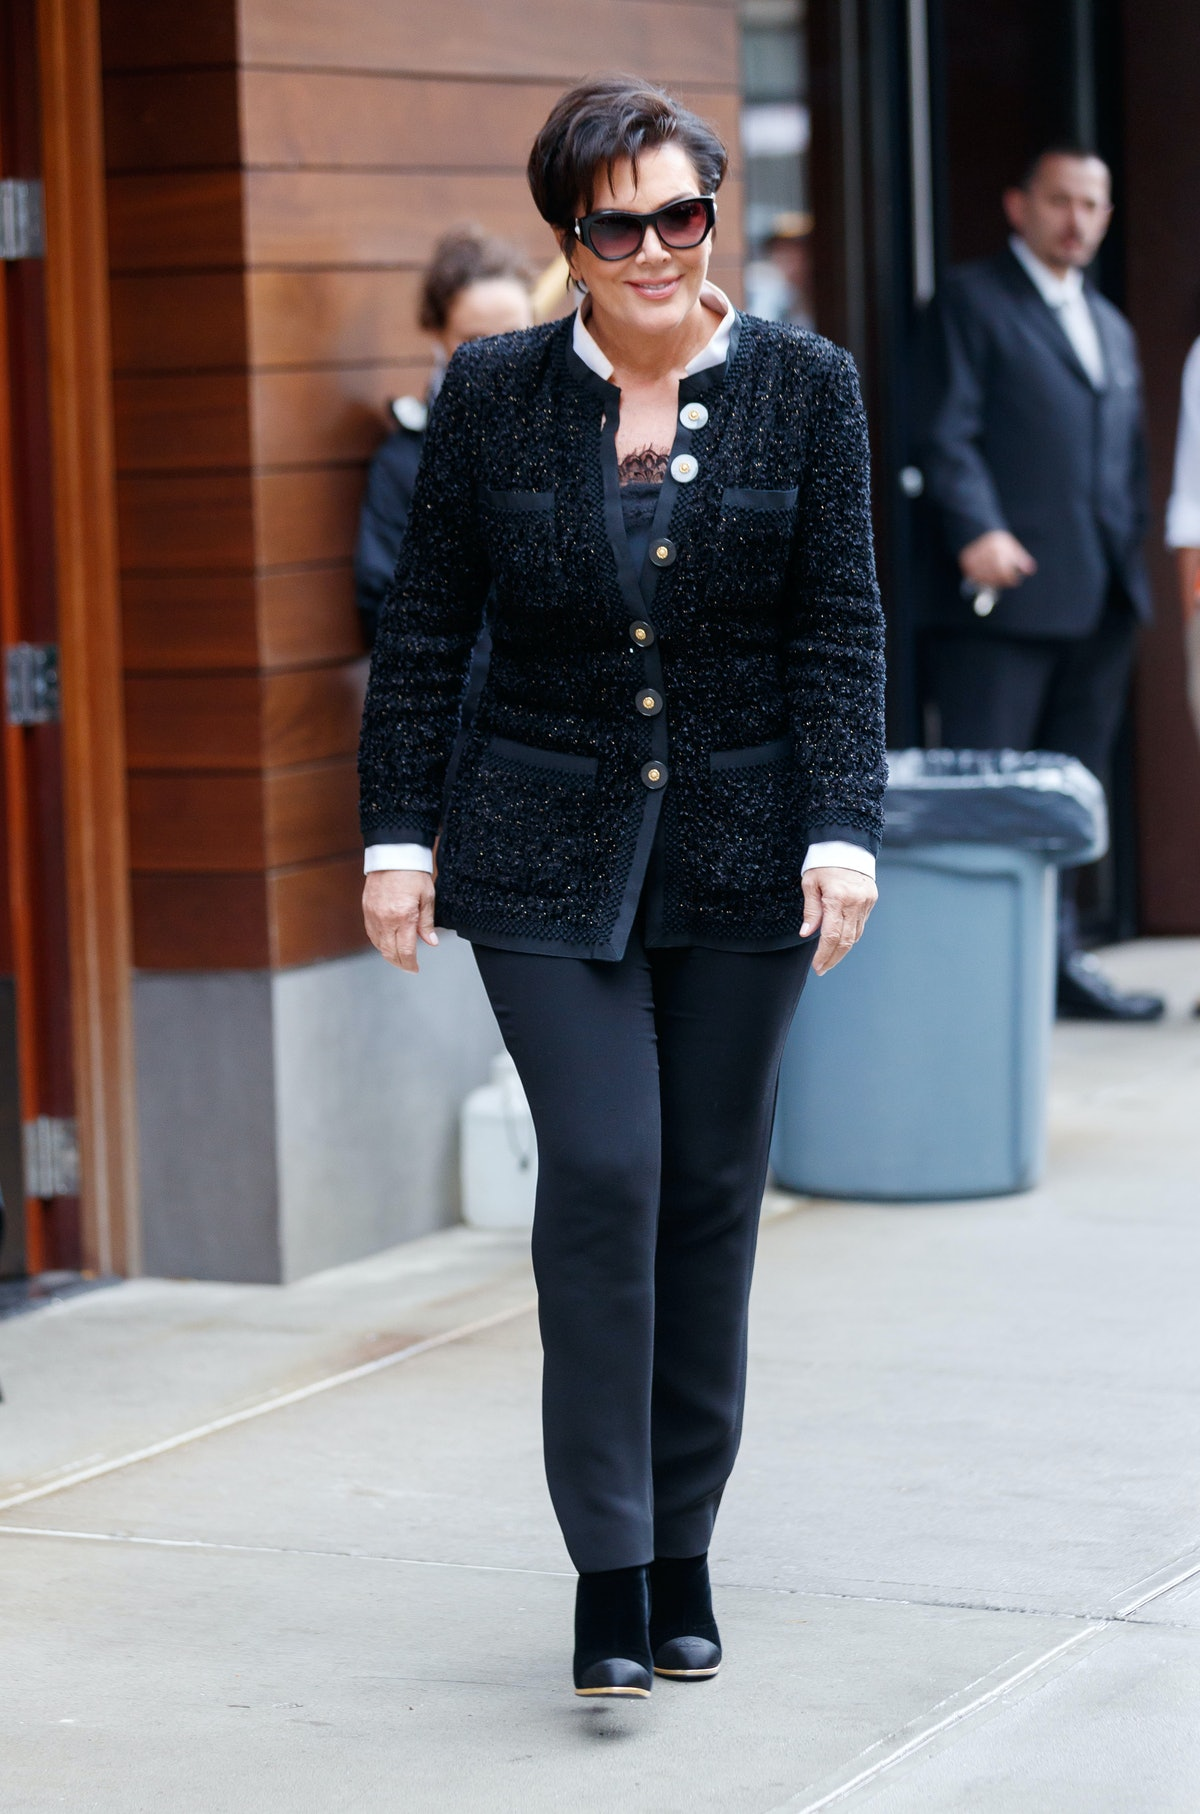 Kris Jenner's Style Calls On 4 Polished Wardrobe Staples Everyone Should Own